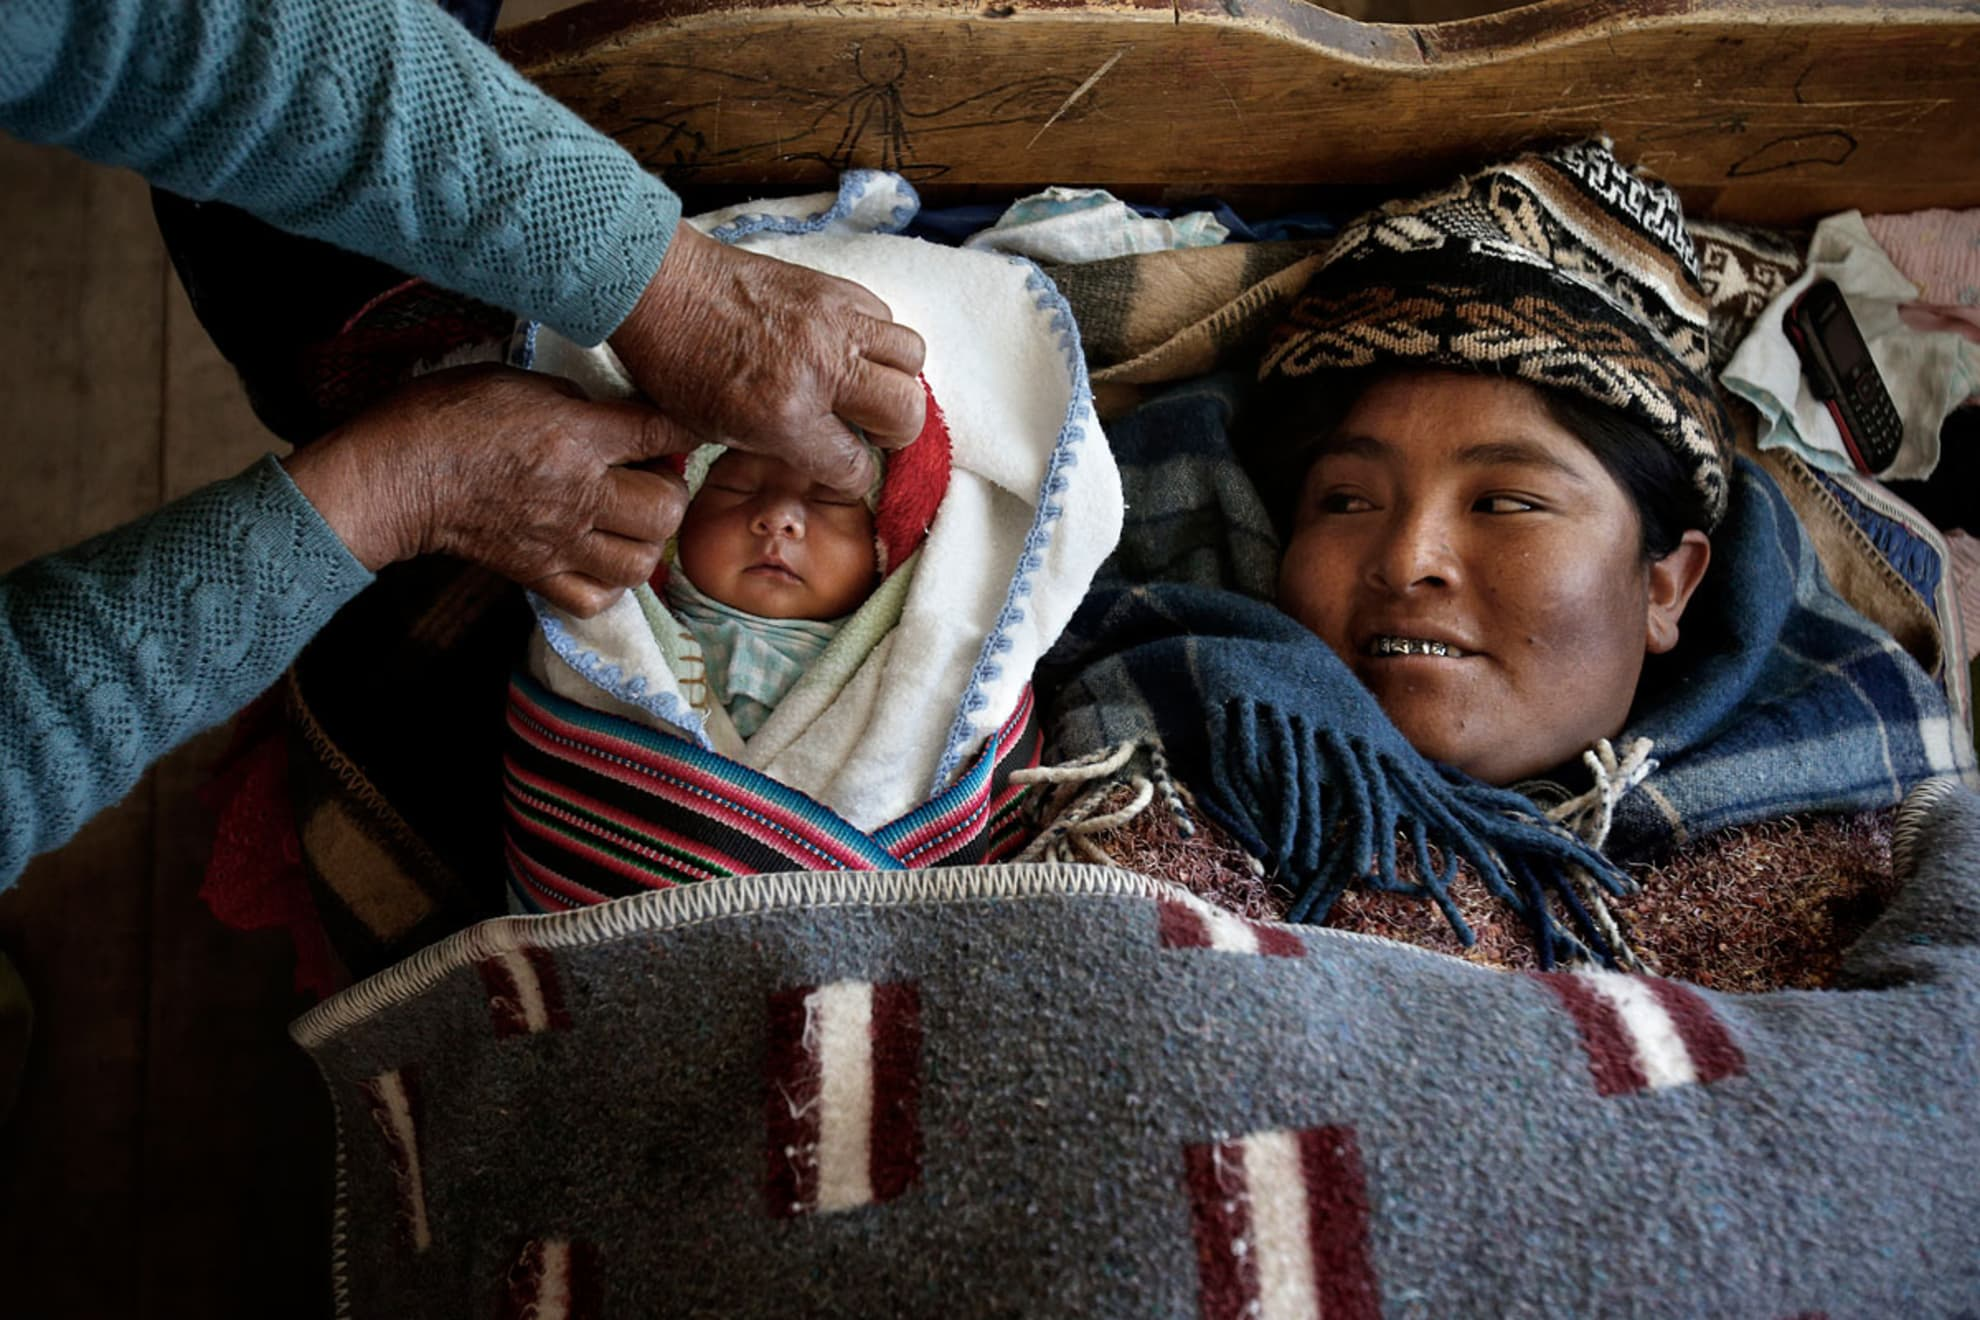 Zenobia Mamani Ramos, 38 years old, rests at home a few days after giving birth.